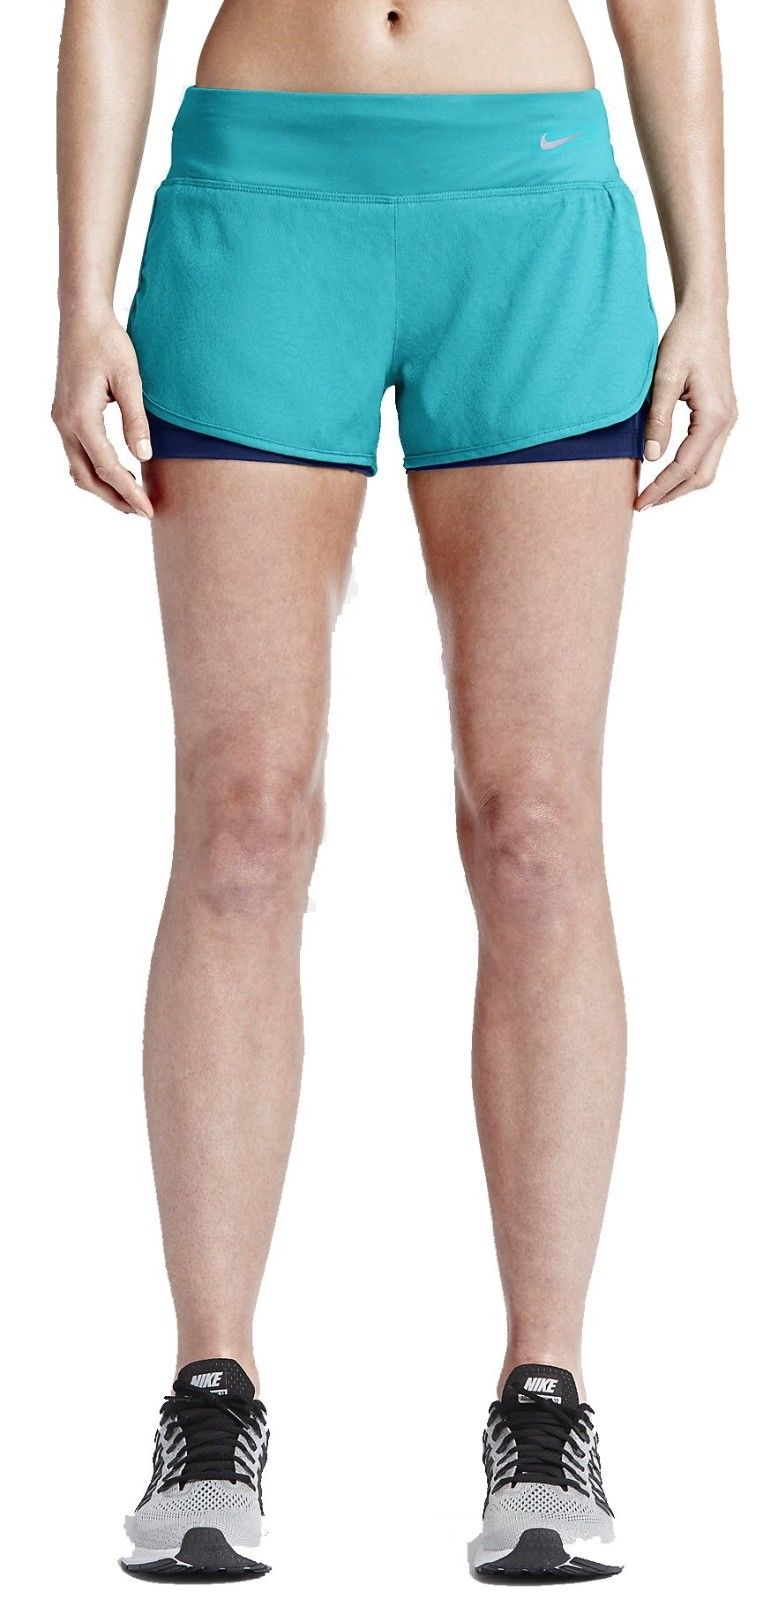 "Women's Nike Rival Jacquard Running 2 in 1 3"" Shorts"